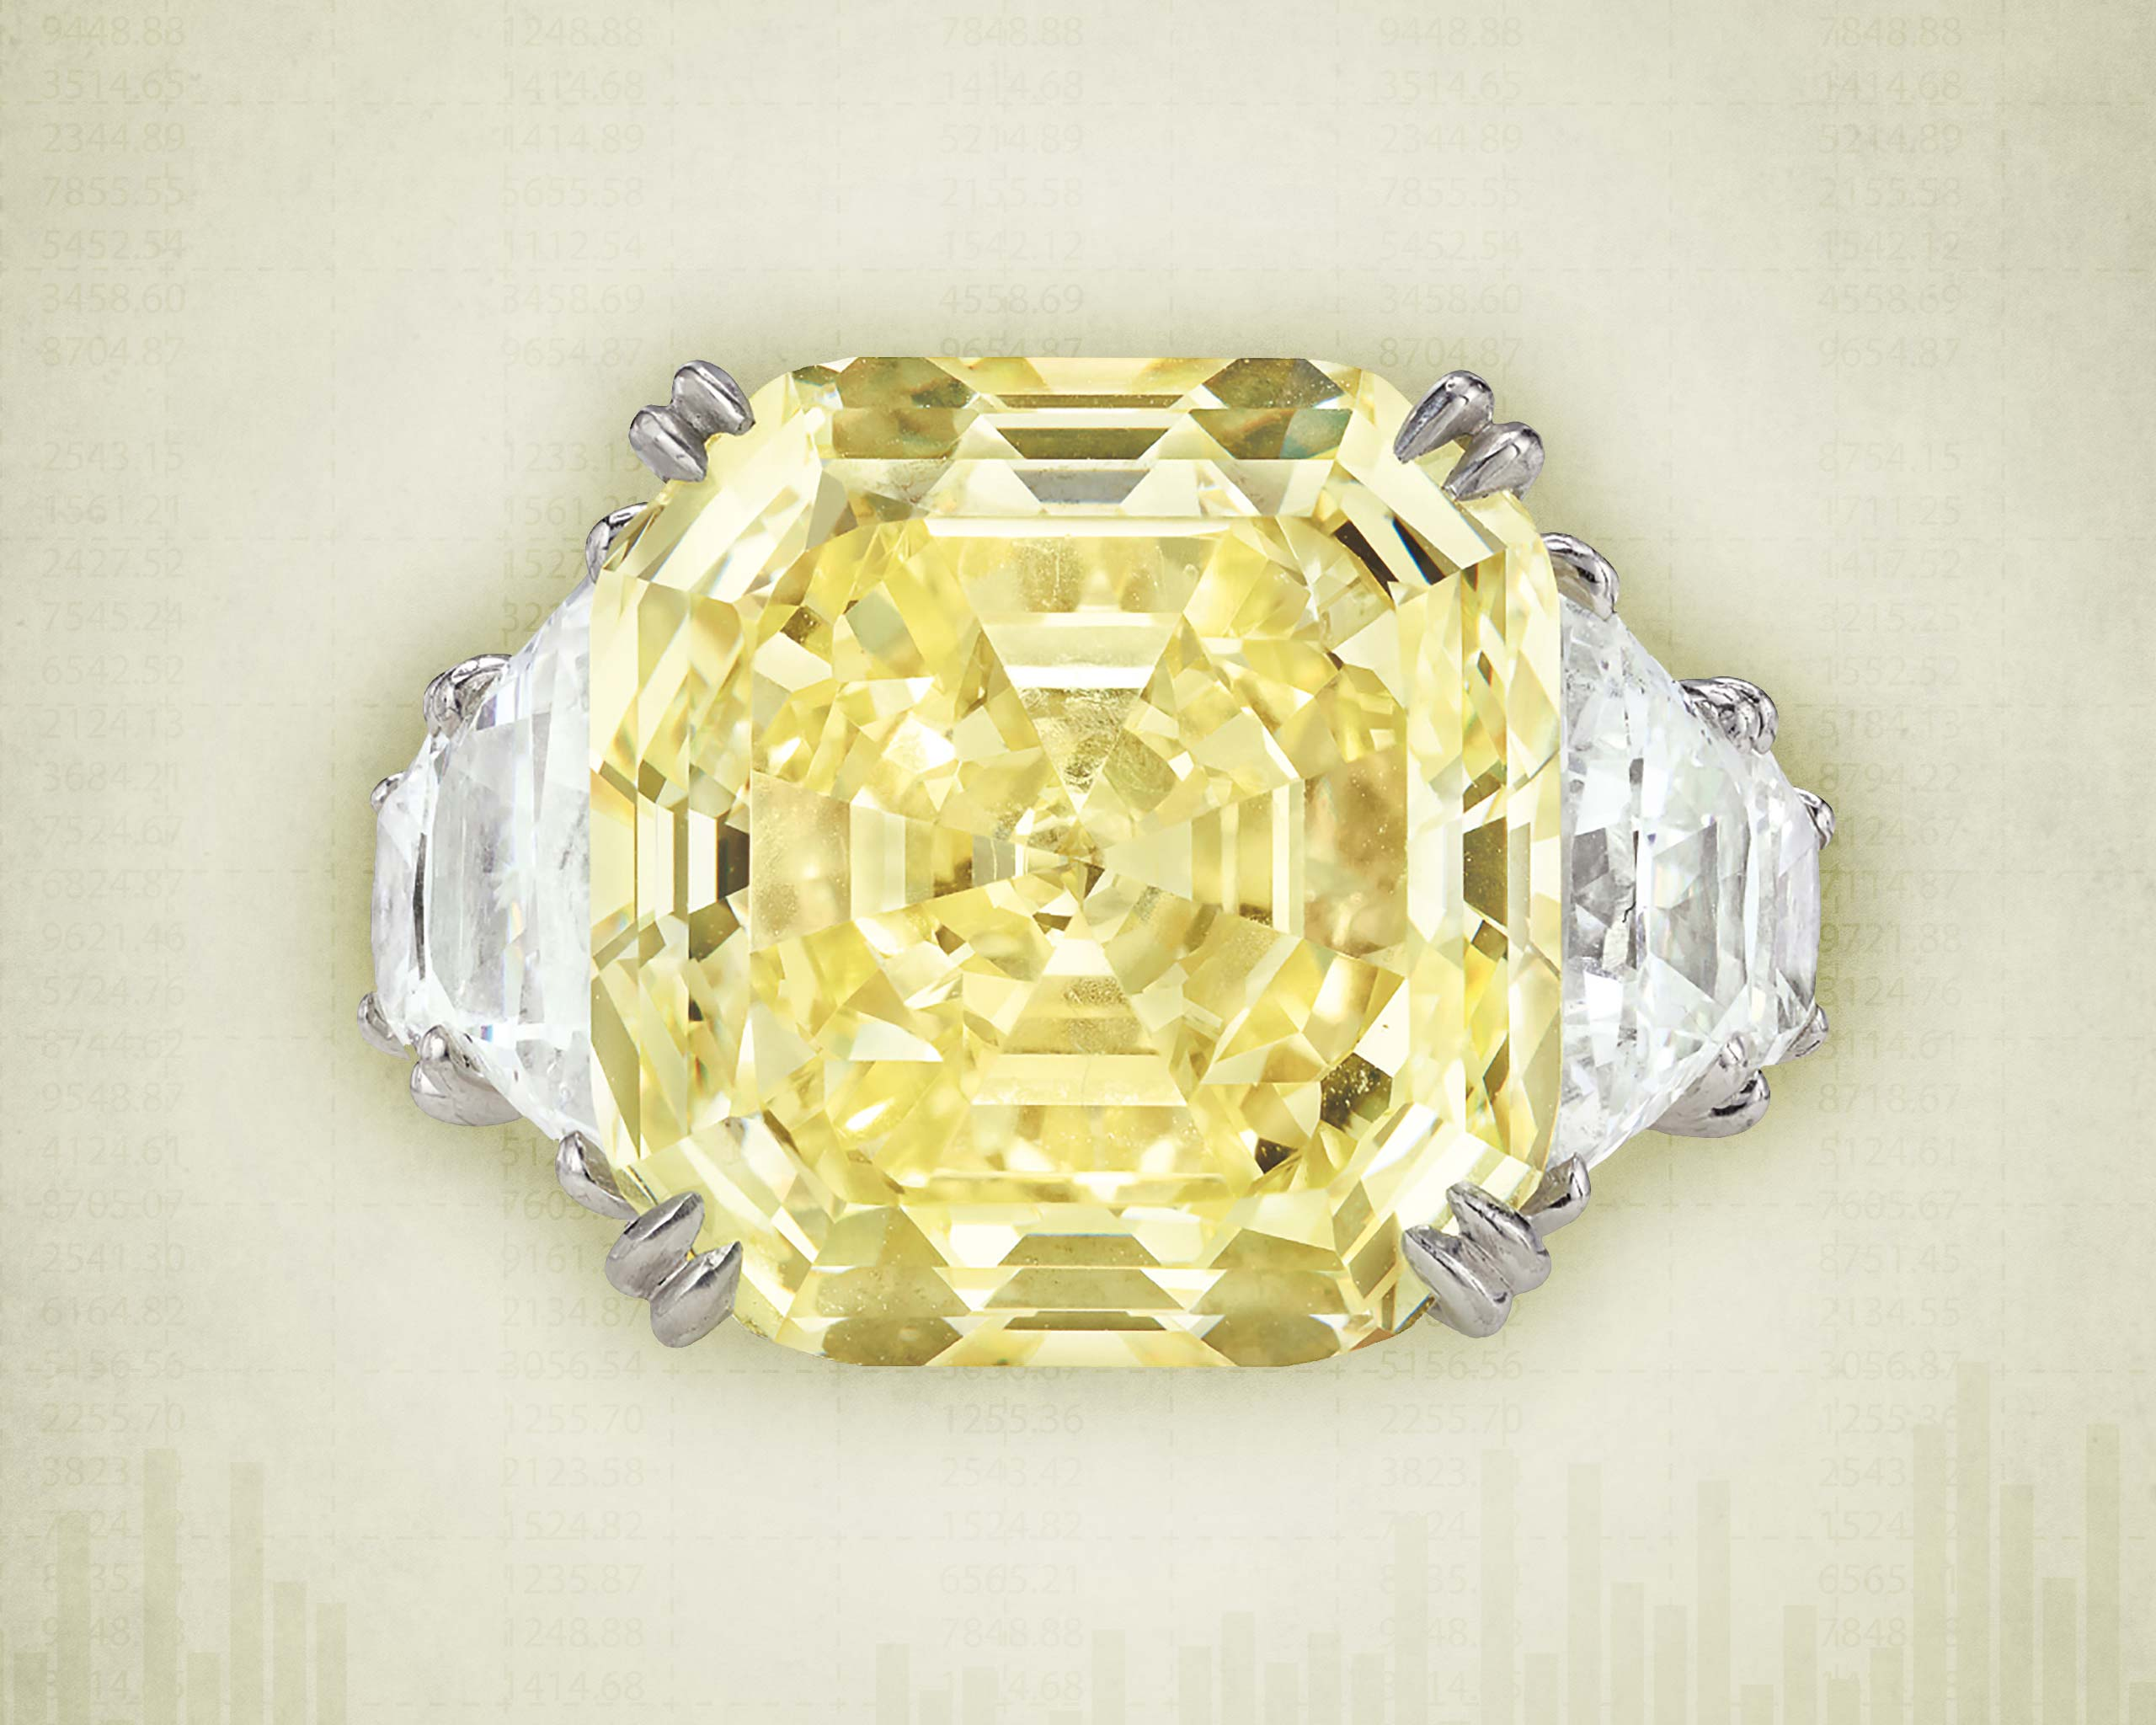 De Beers 16.2-carat fancy intense yellow diamond ring with 2 trapezoid diamonds sold at the 2020 Phillips auction